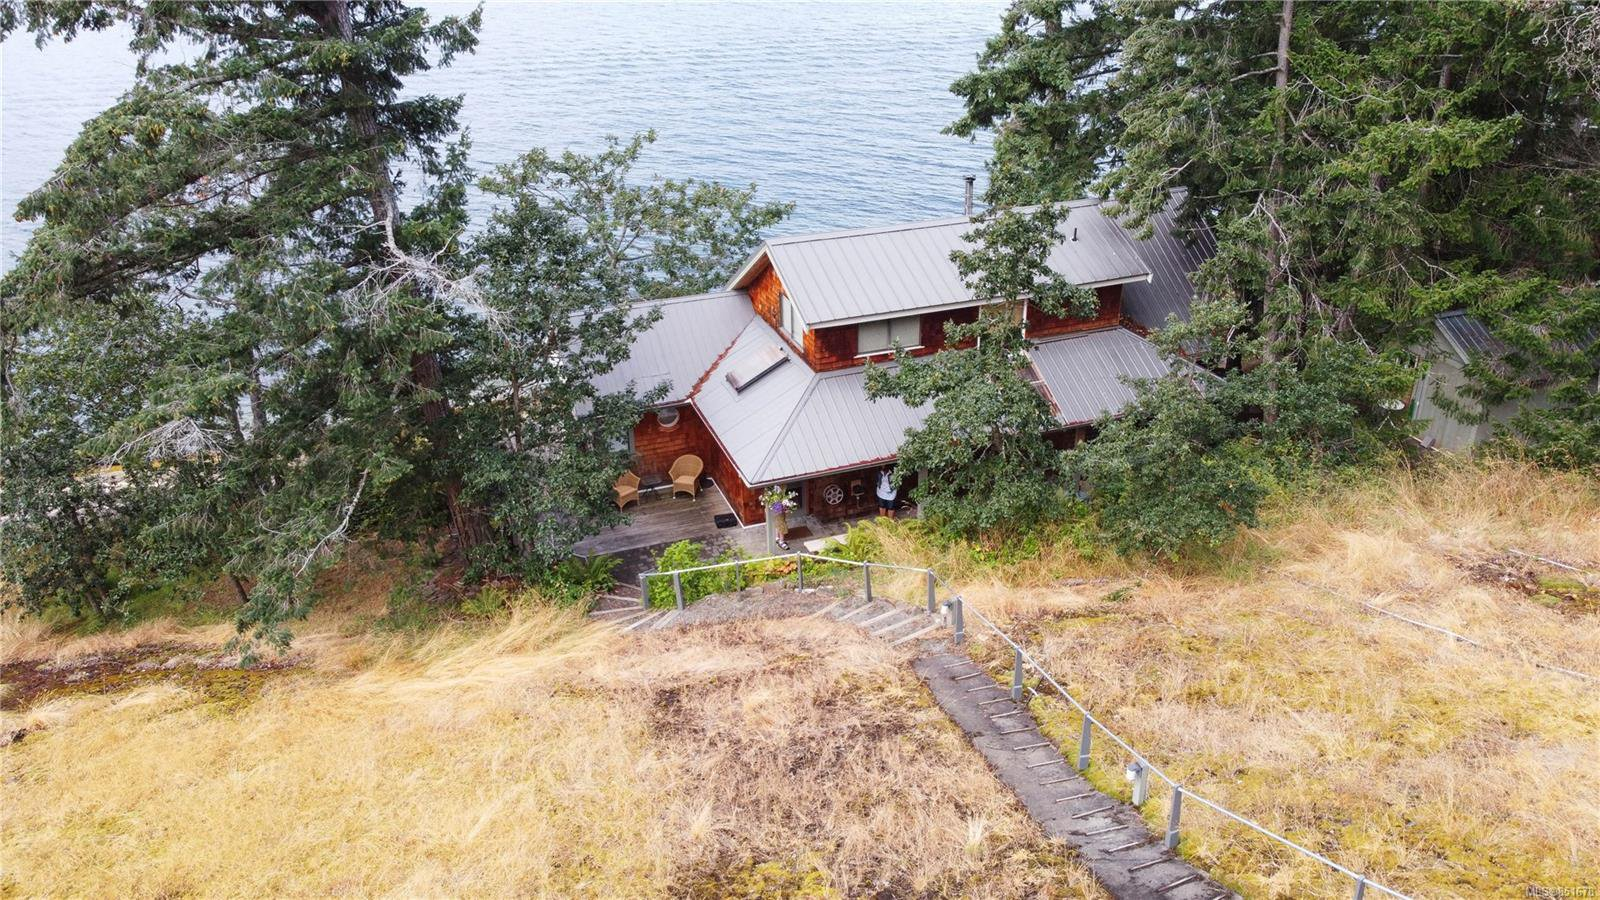 Photo 3: Photos: 262 Forbes Dr in : Isl Thetis Island House for sale (Islands)  : MLS®# 851678